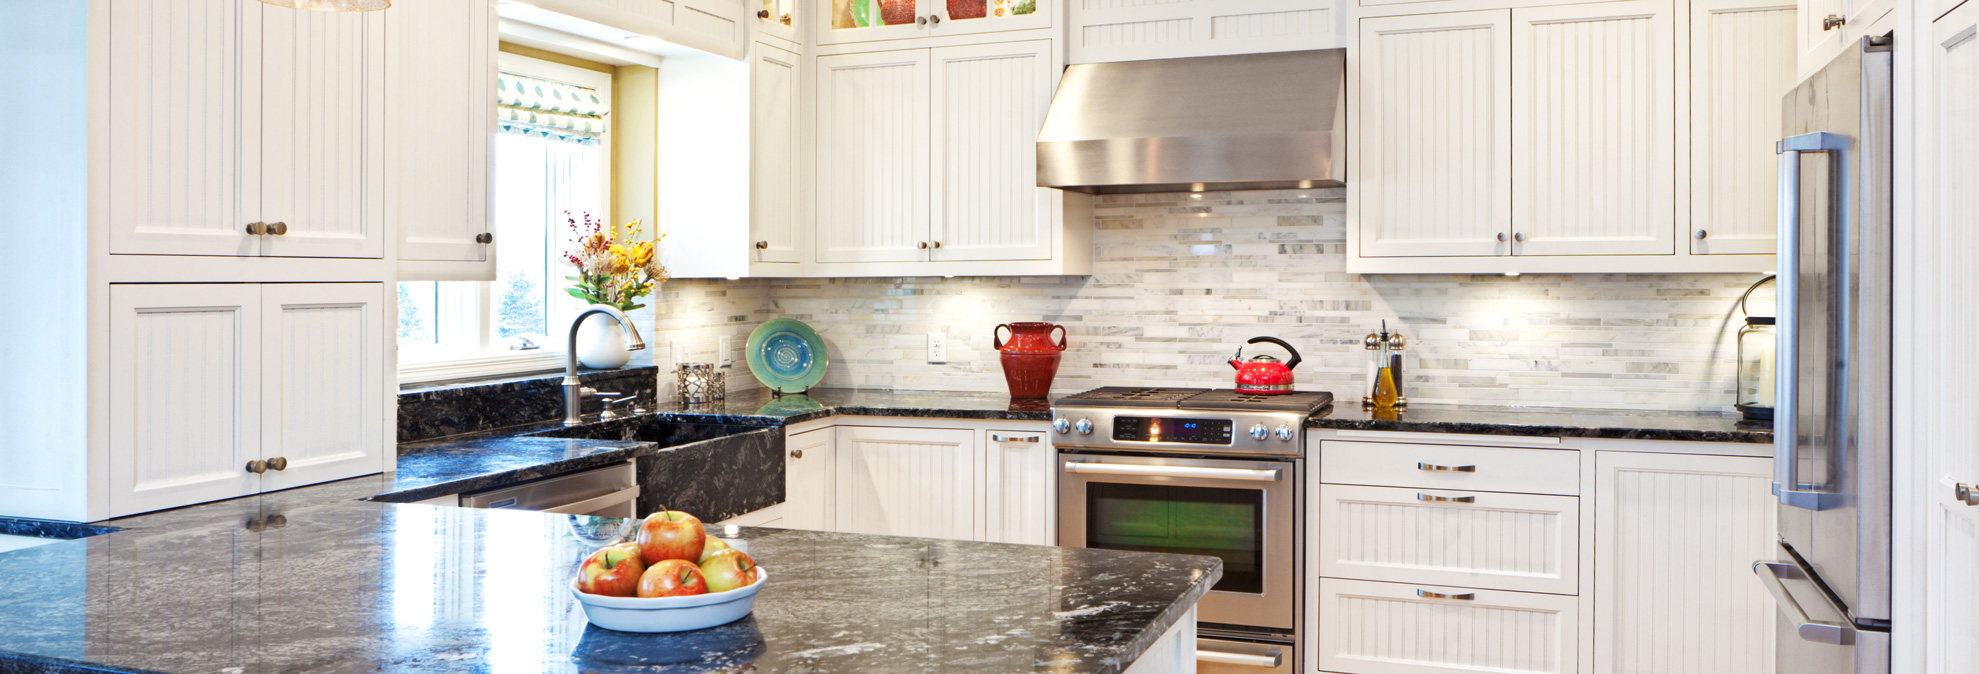 Mixing and Matching HighEnd Kitchen Appliances  Consumer